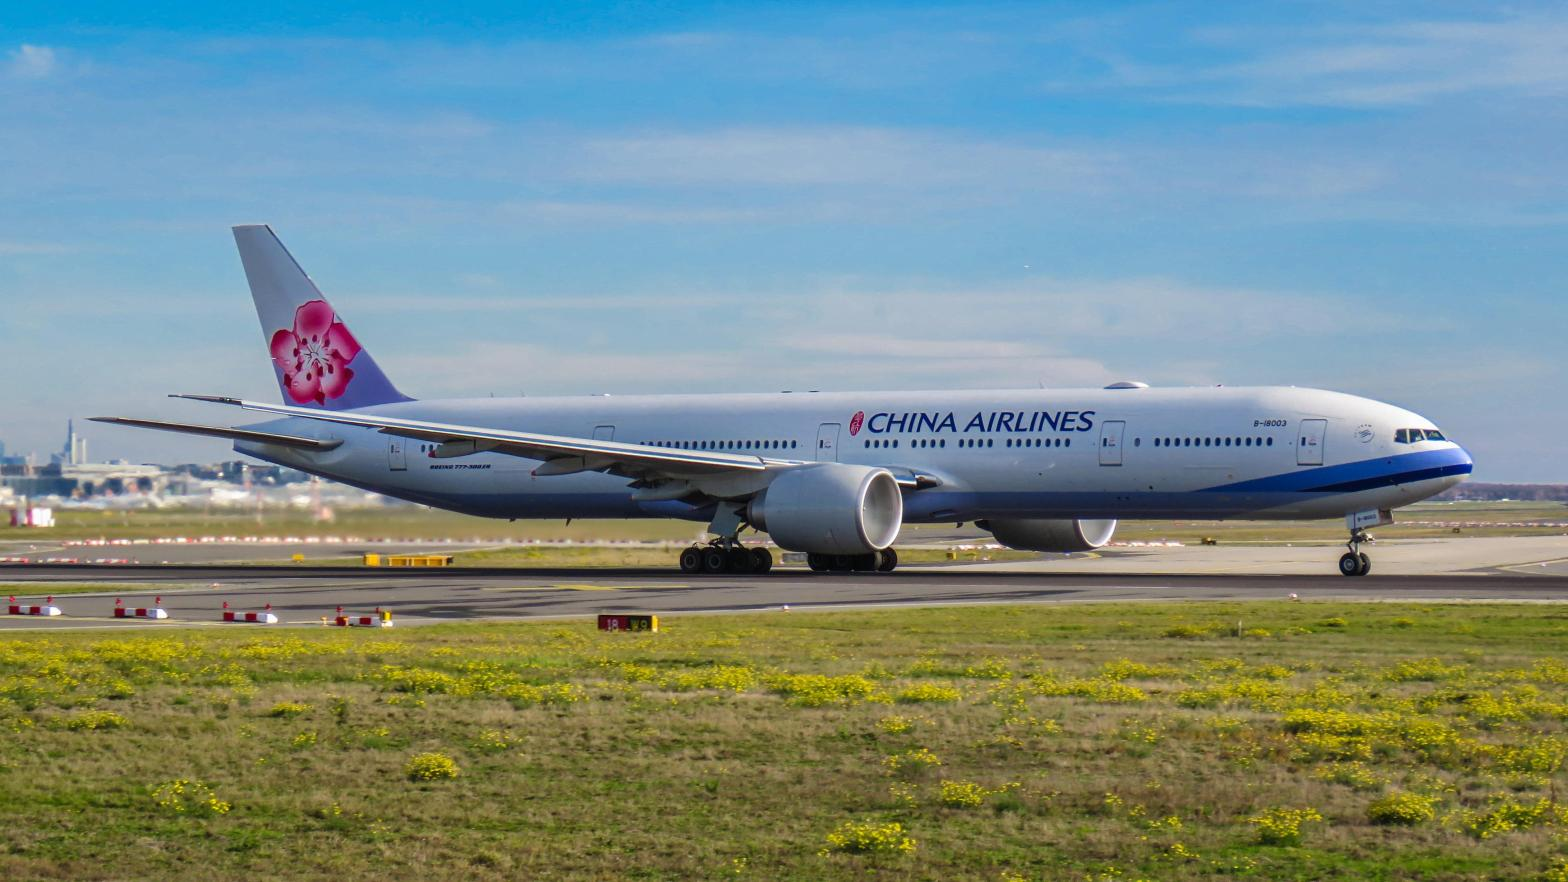 China Airlines B777-300ER.